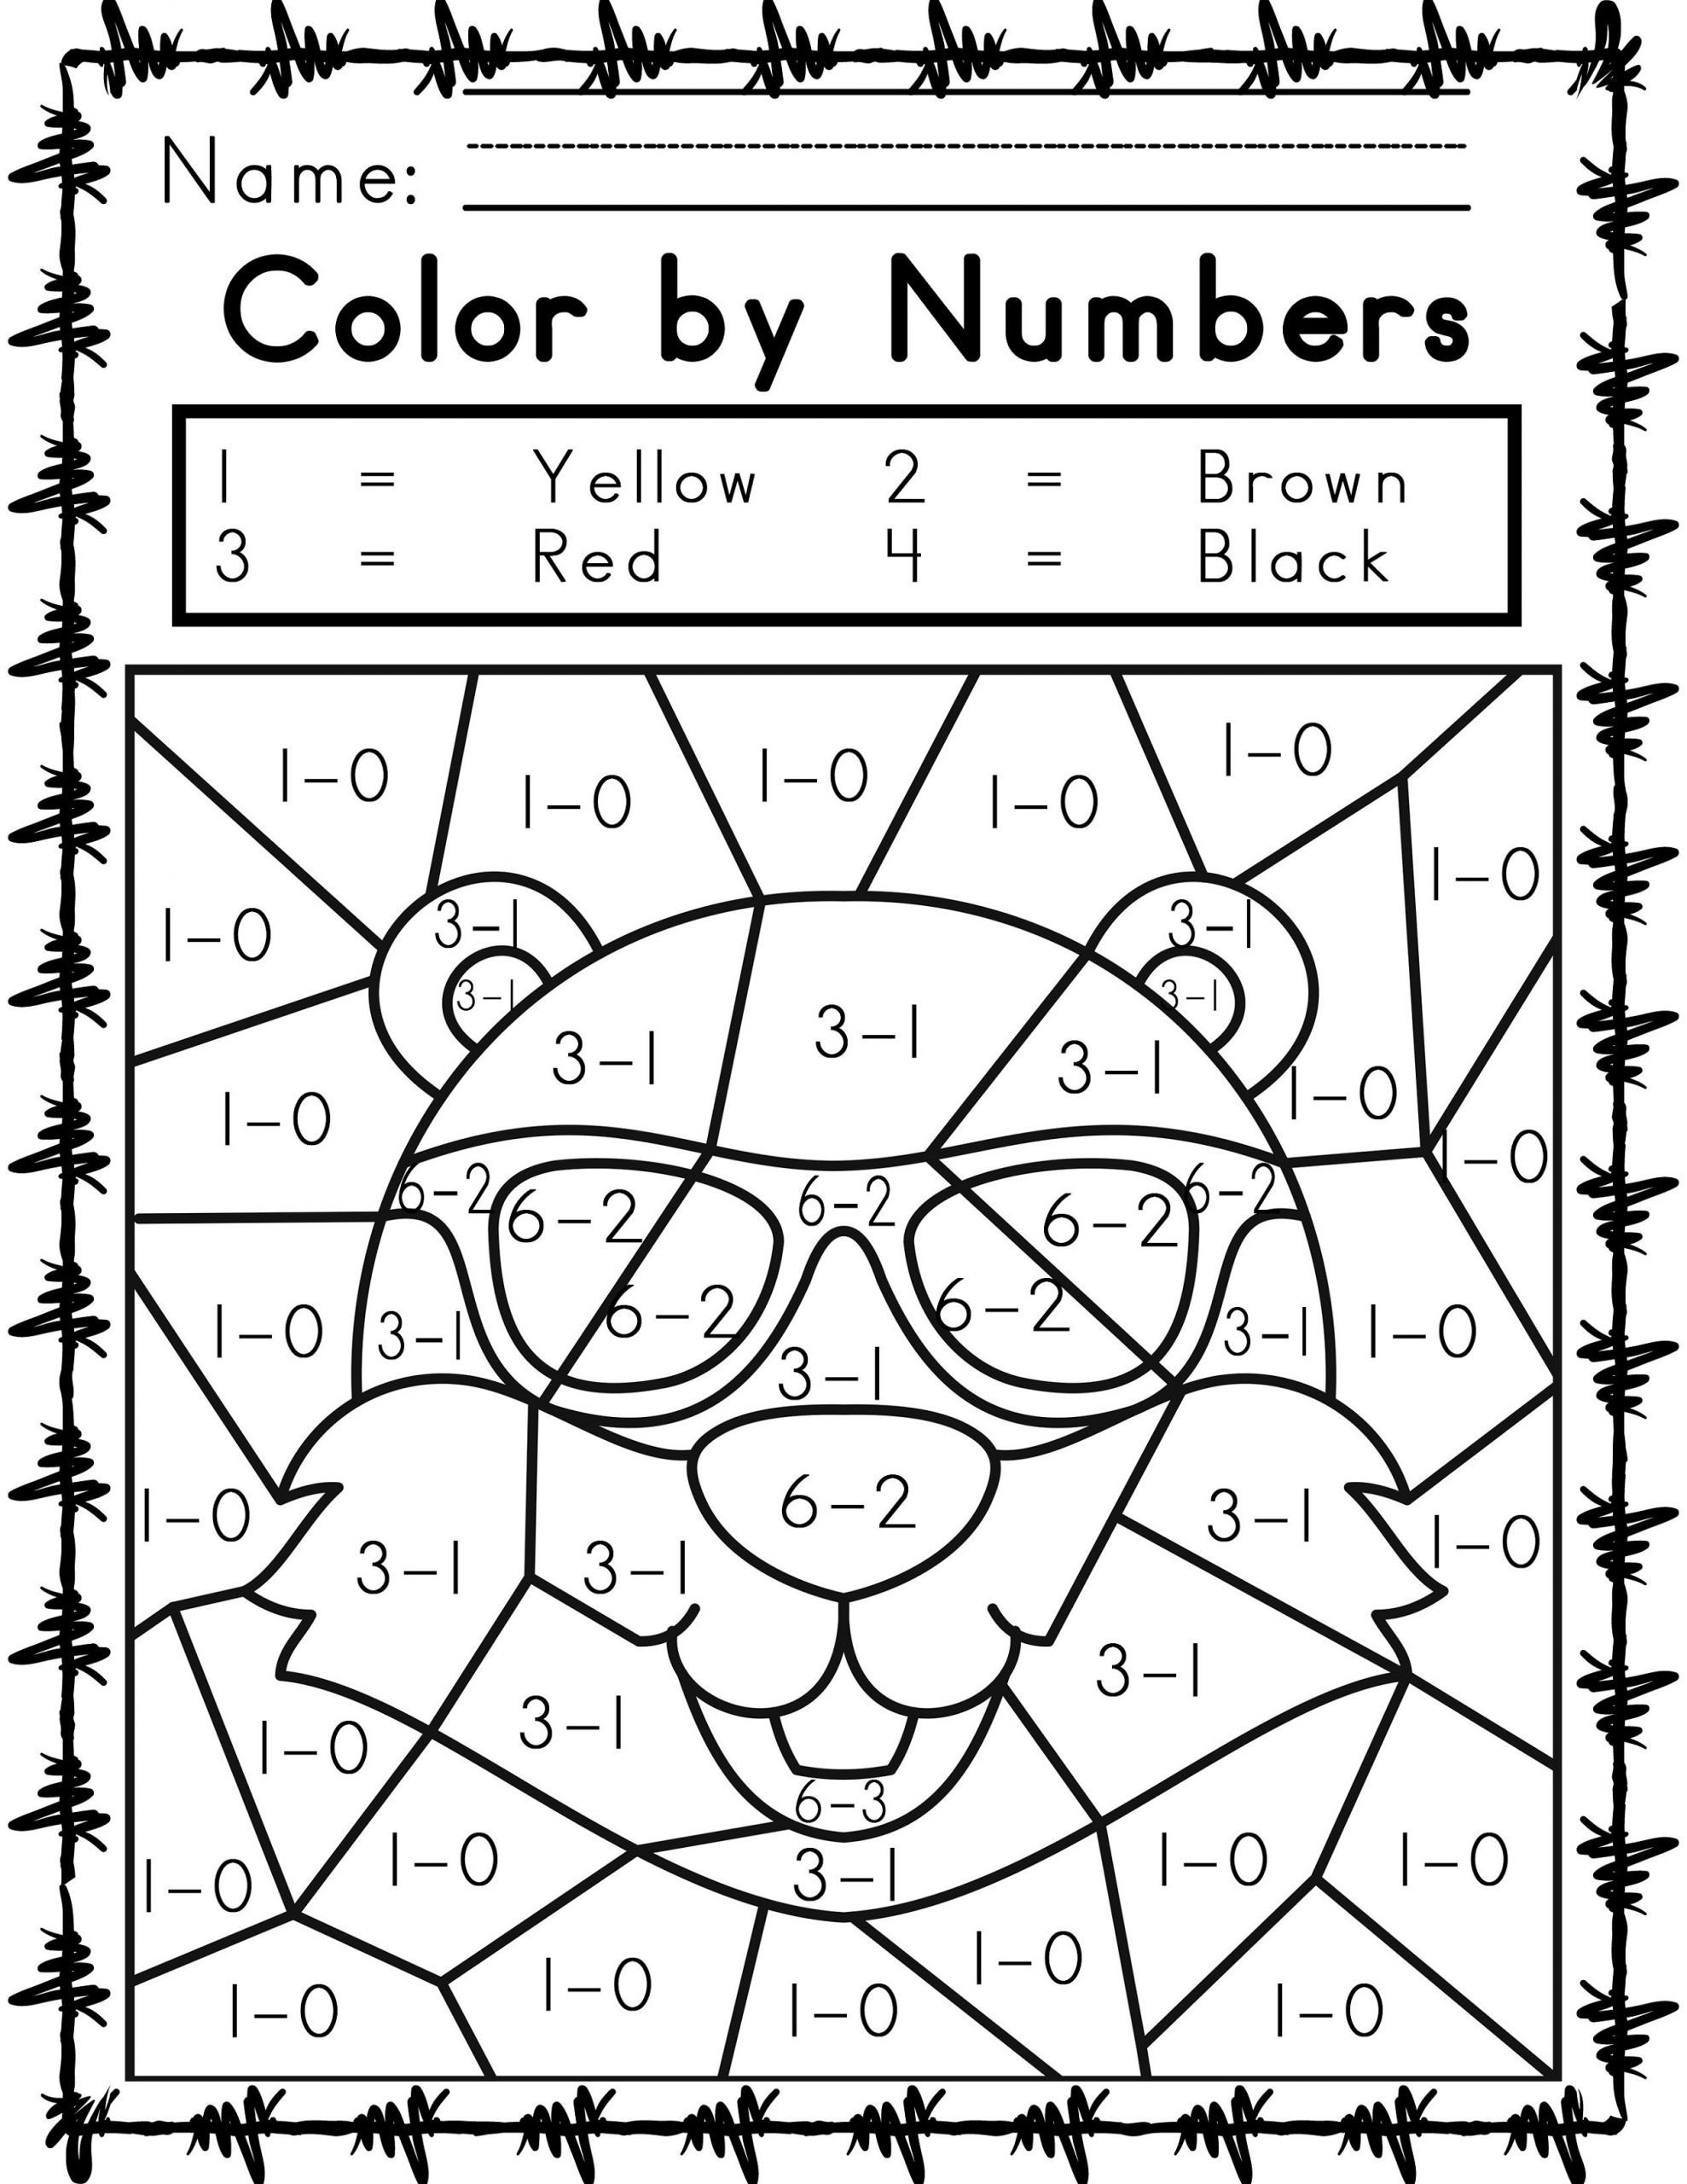 Color By Number Games Math scaled